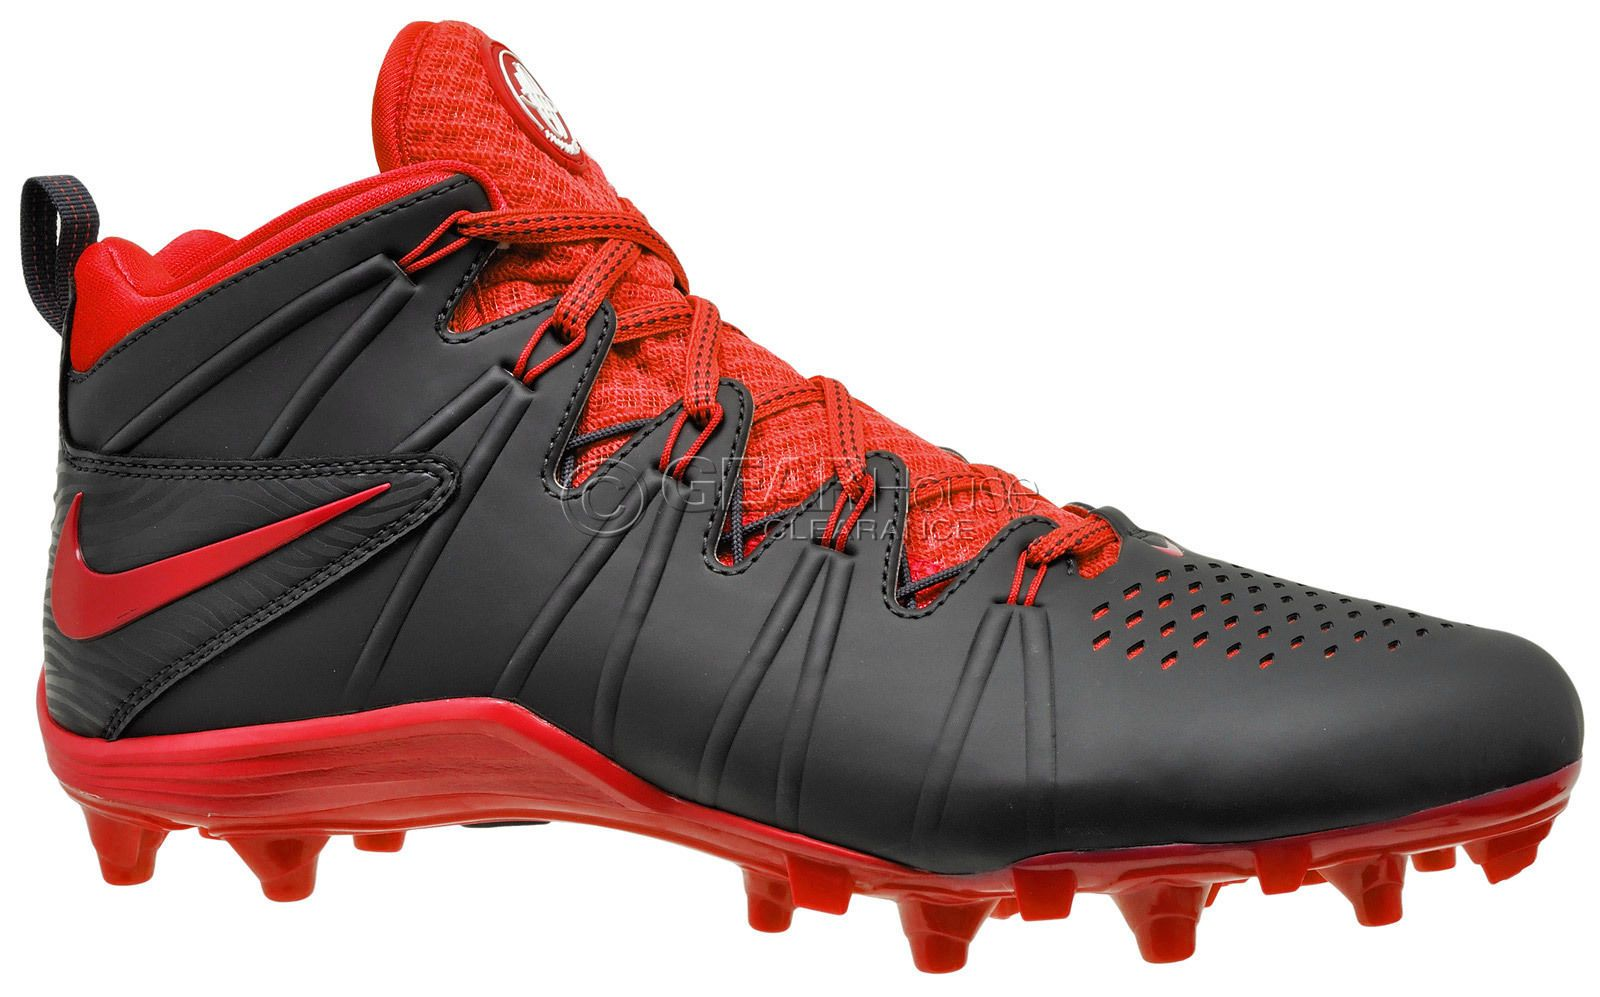 New NIKE Huarache 4 LAX Mens Lacrosse Cleats Football LX : Black Red : 8.5